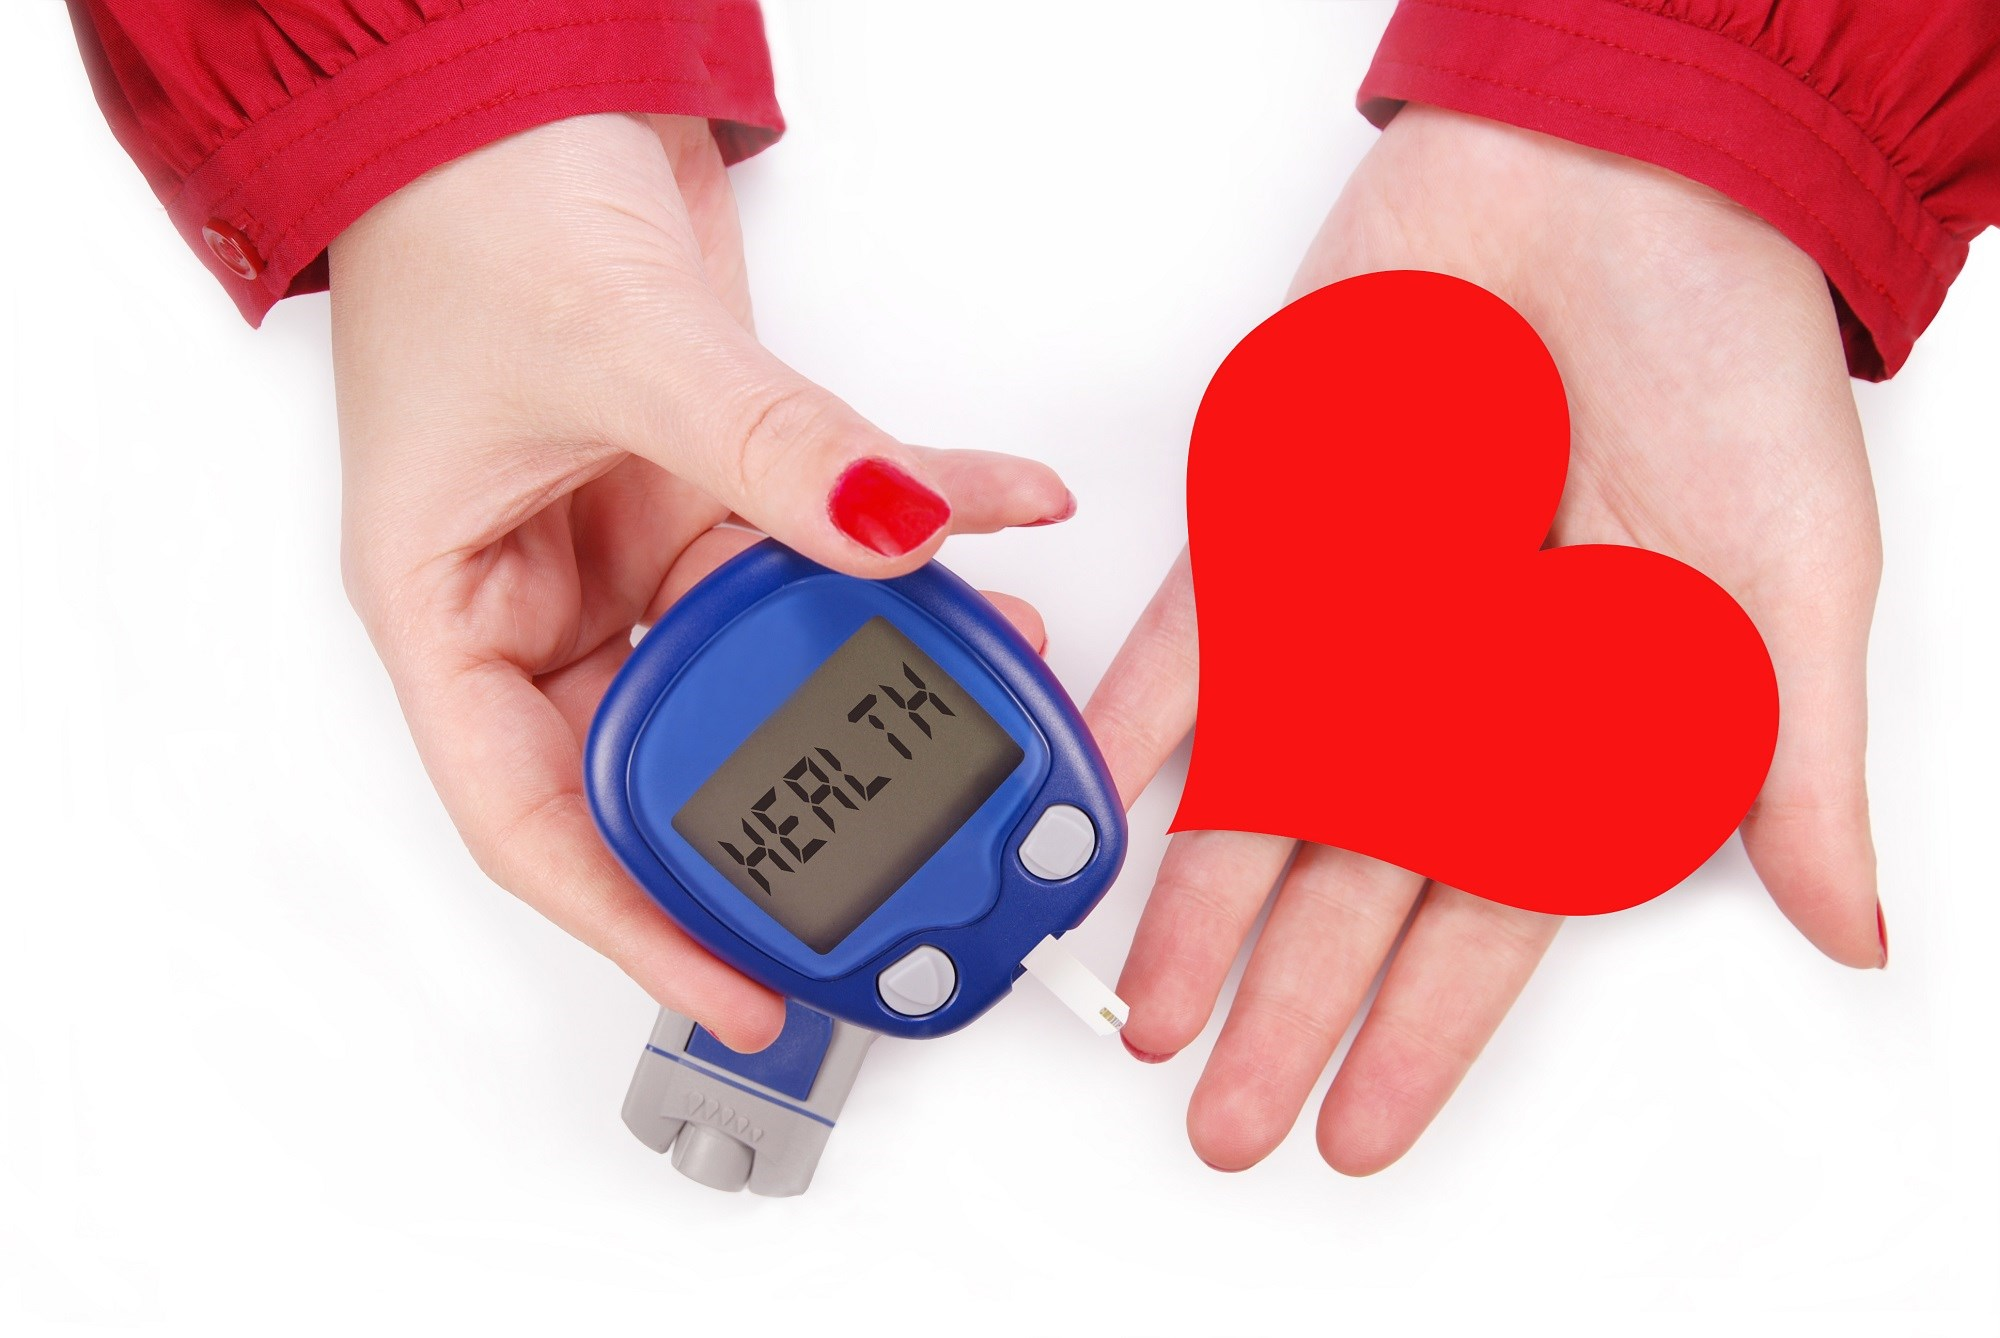 Type 2 Diabetes an Independent Risk Factor for Coronary Artery Disease